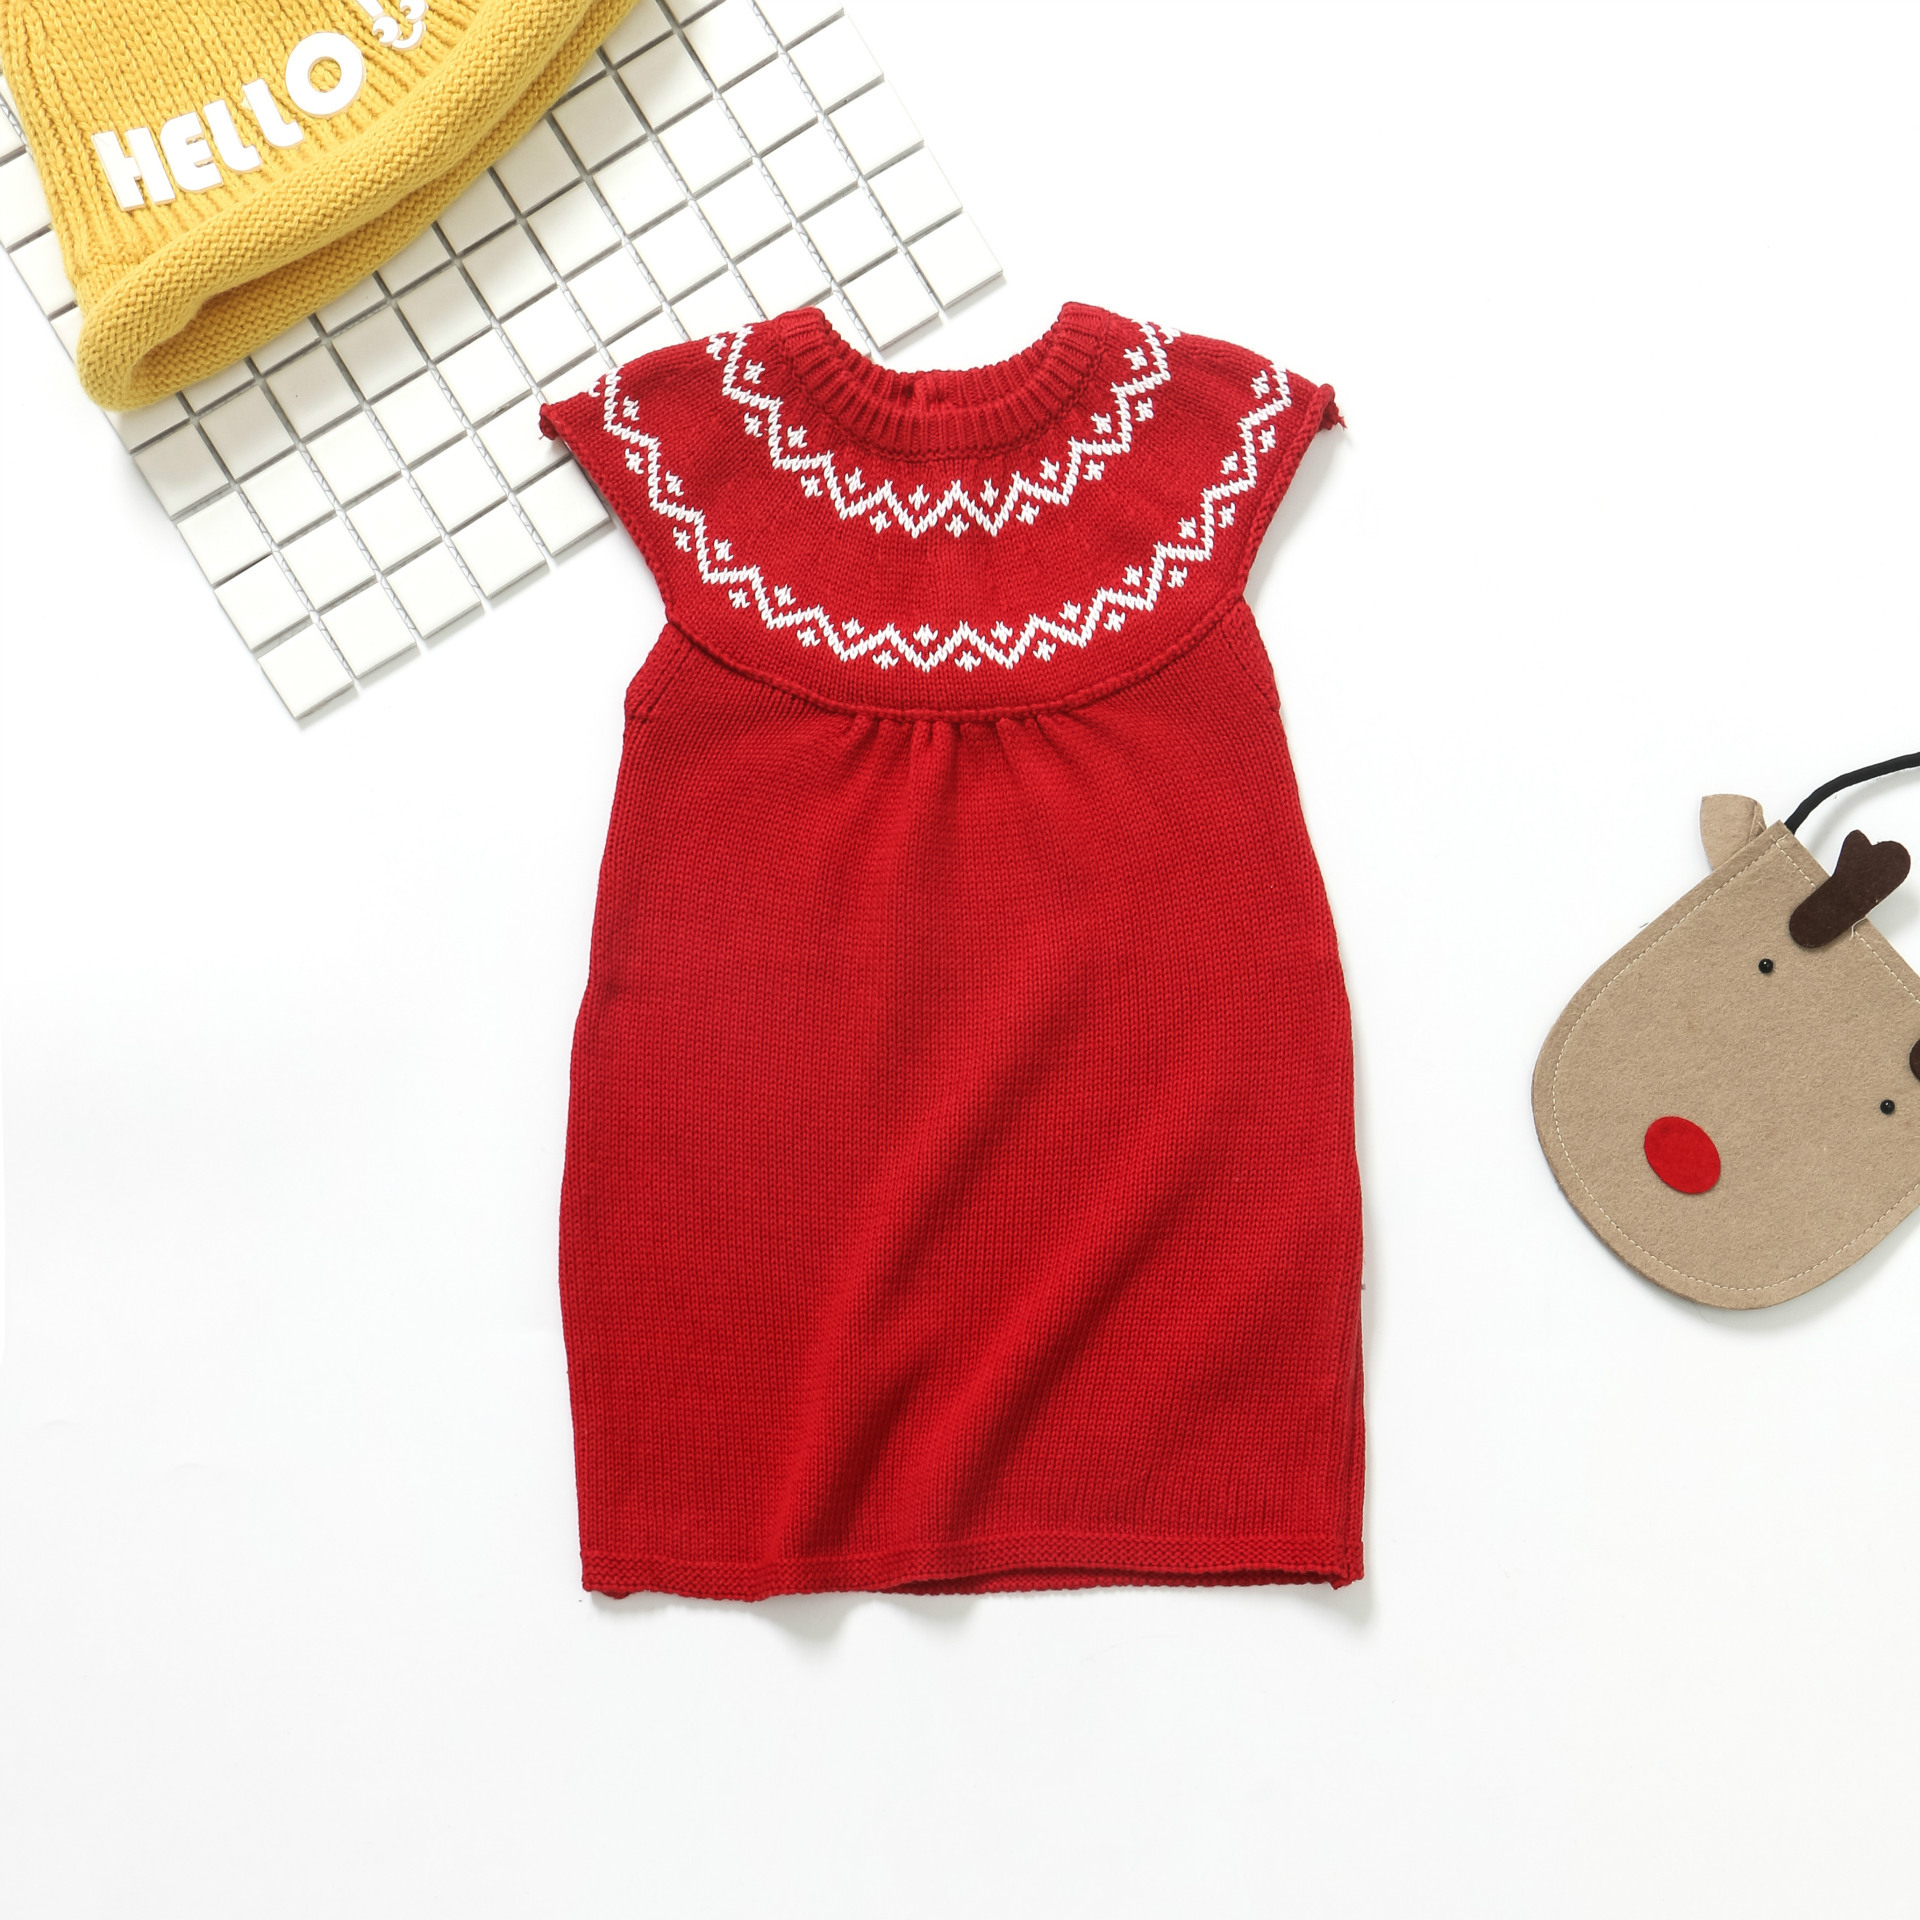 2017 Autumn new baby girl knitted dress Korea style infant baby